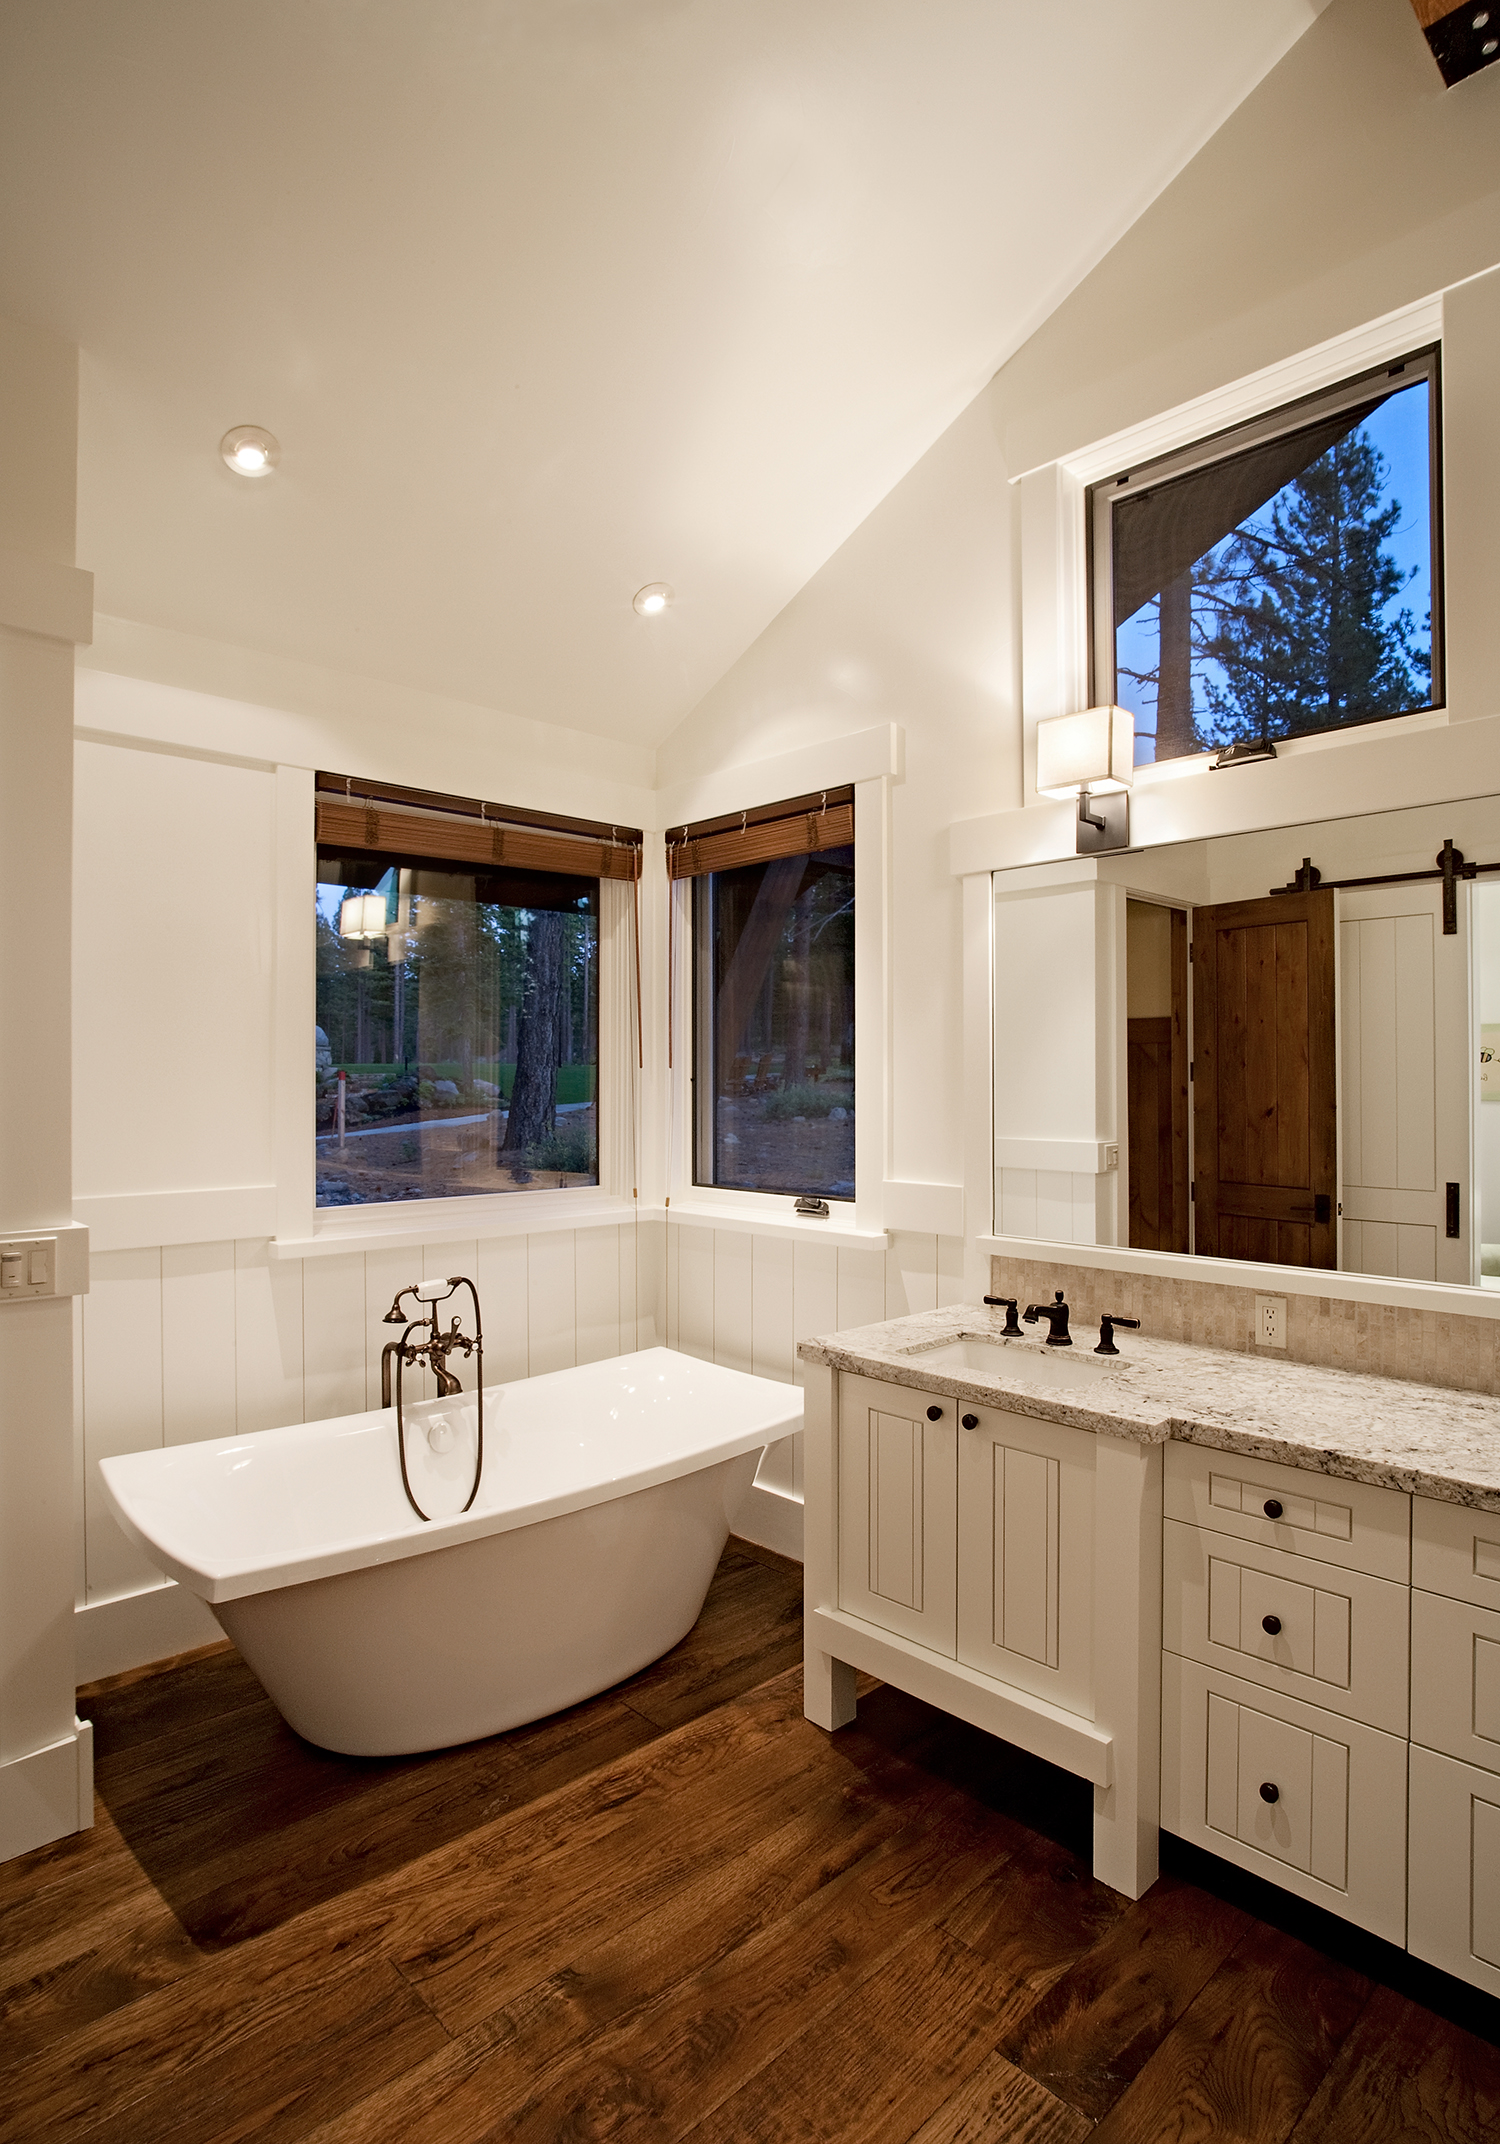 Lot 284_Master Bath_Freestanding Tub.jpg